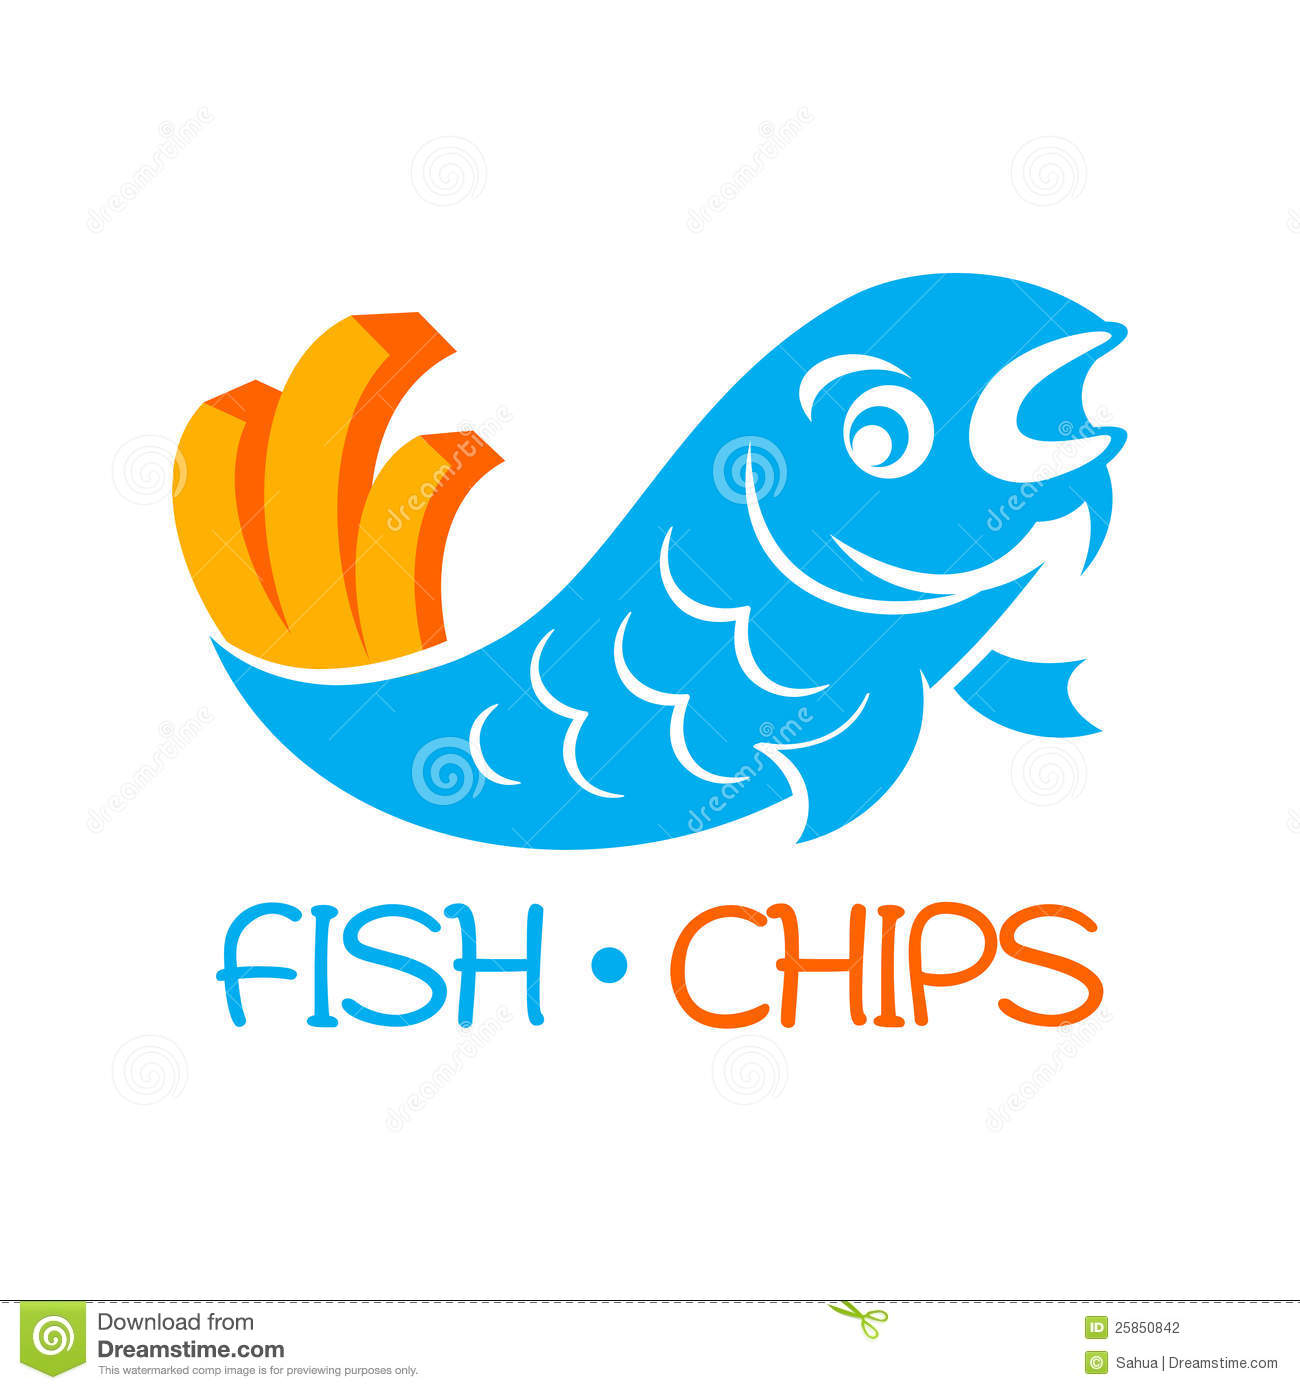 fish and chips clipart - photo #19